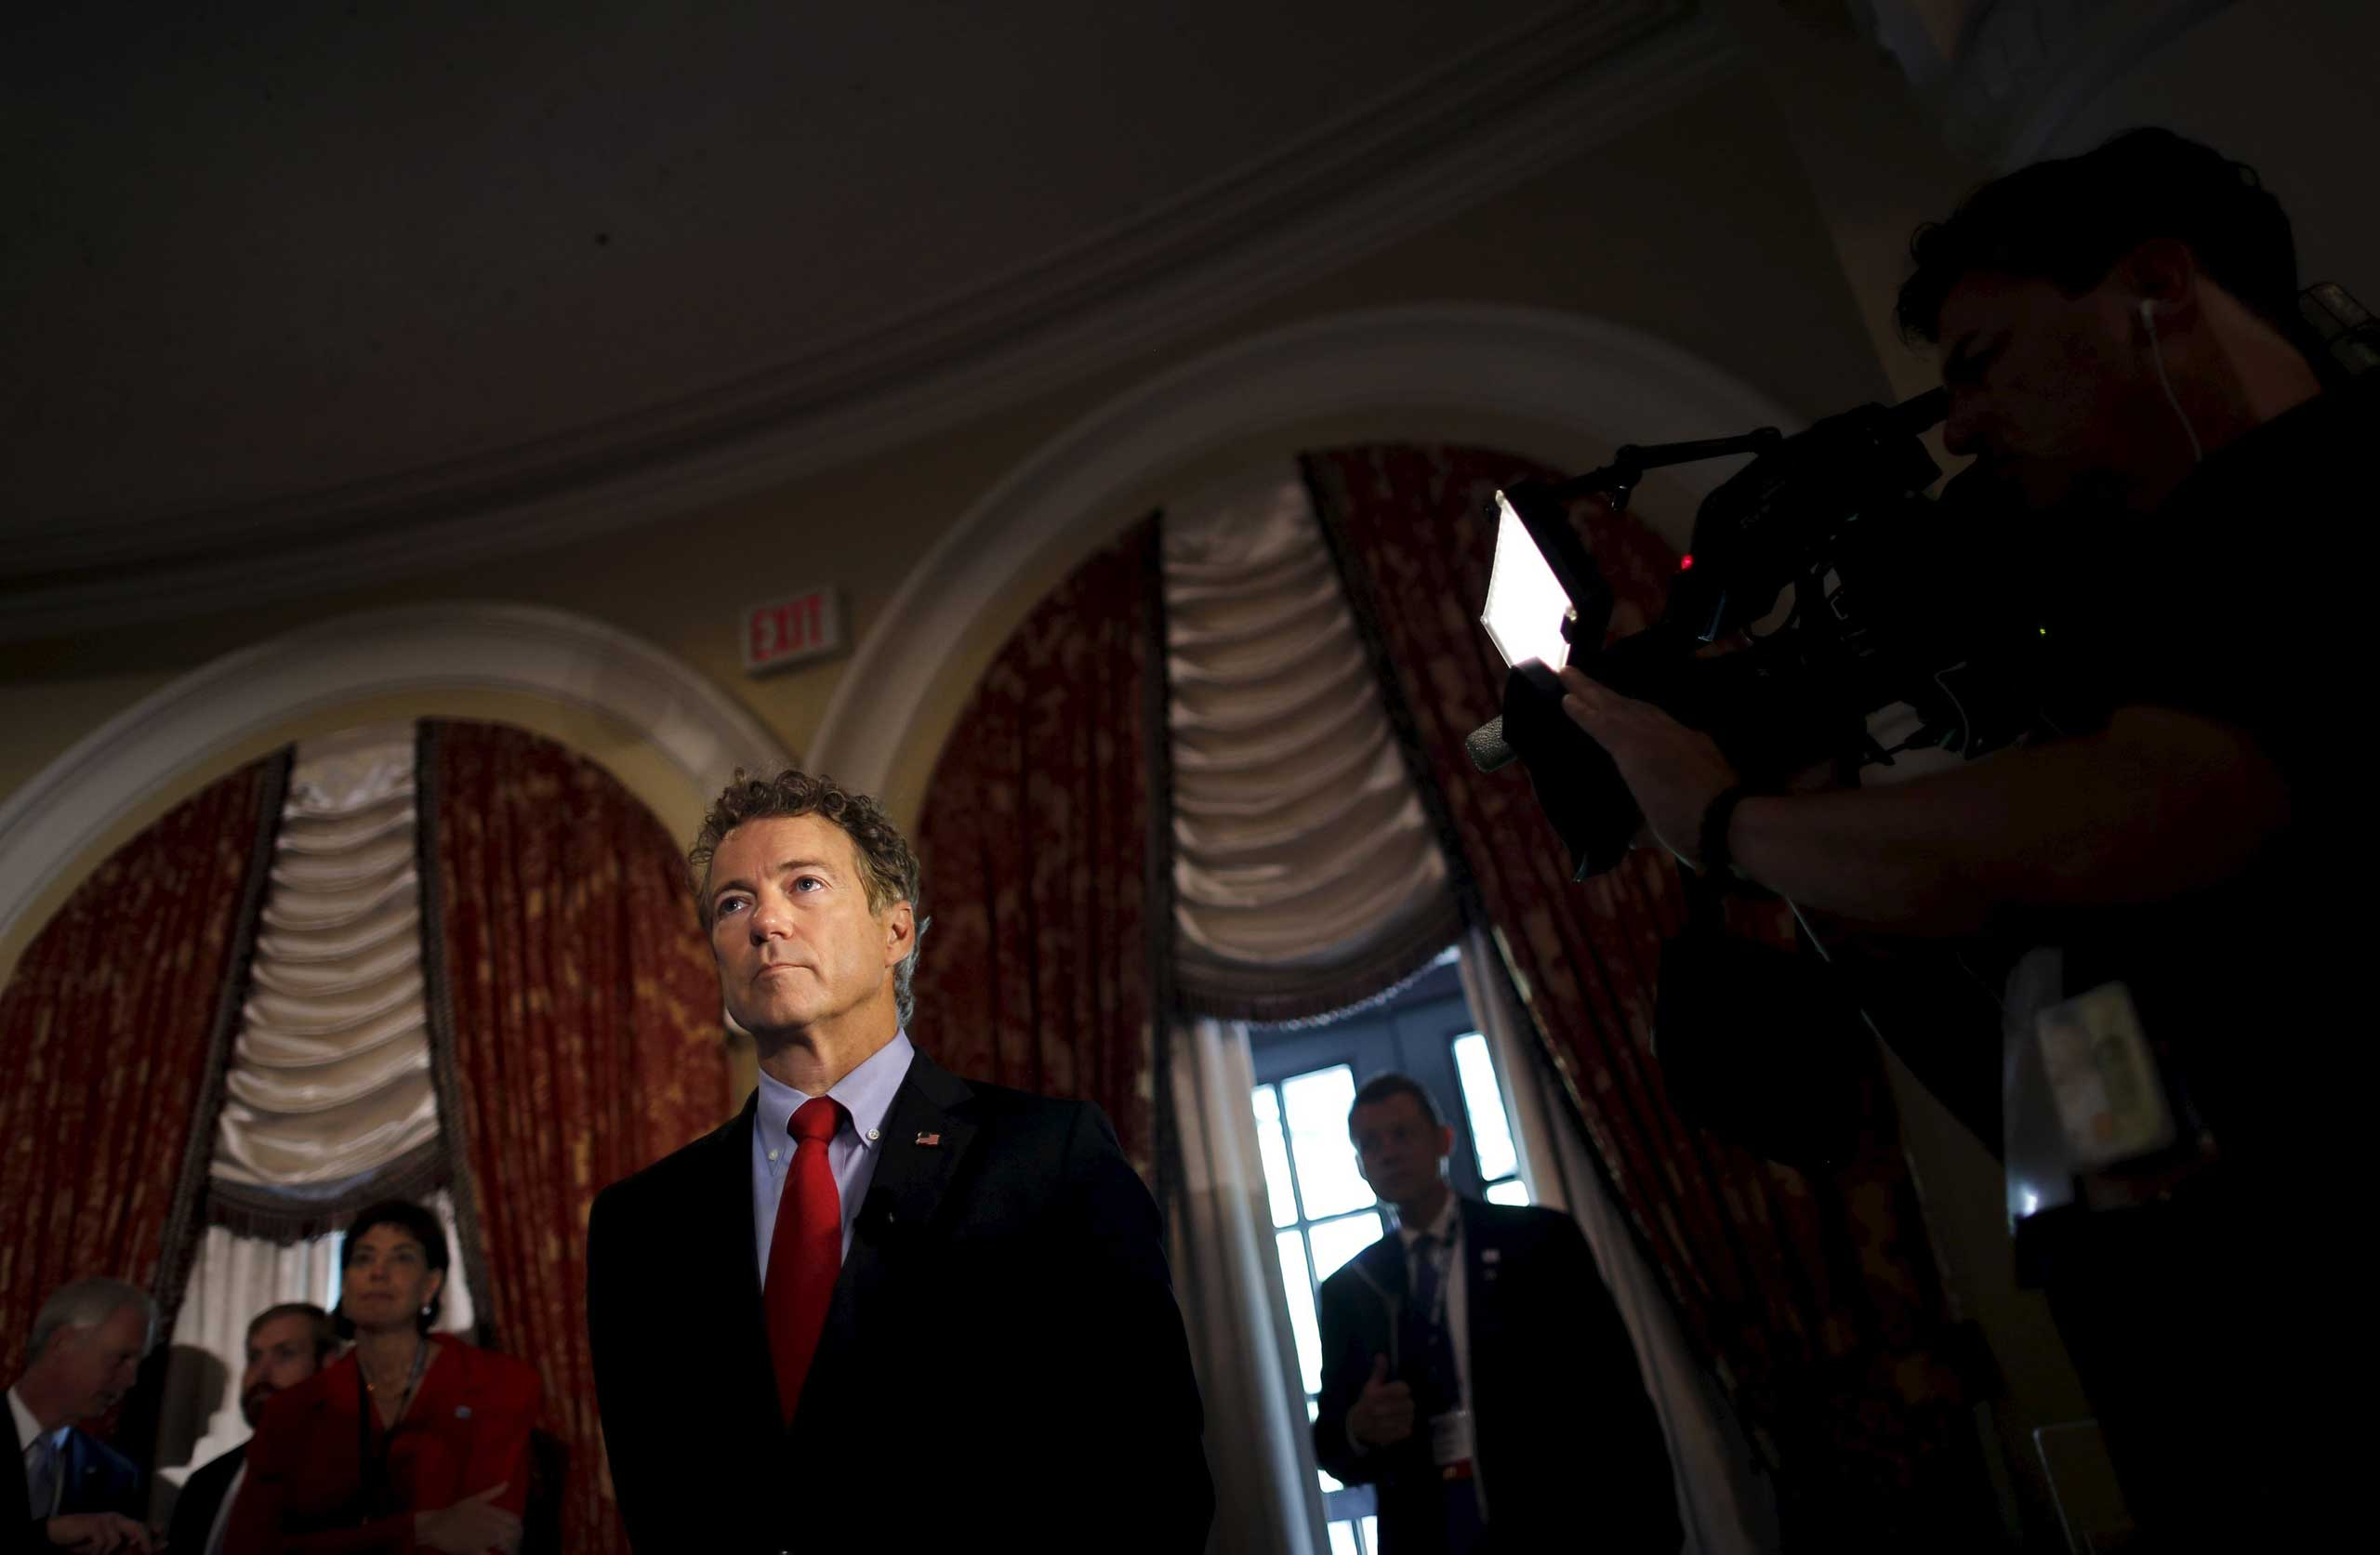 Republican presidential candidate Senator Rand Paul waits before addressing a legislative luncheon held as part of the  Road to Majority  conference in Washington on  June 18, 2015.